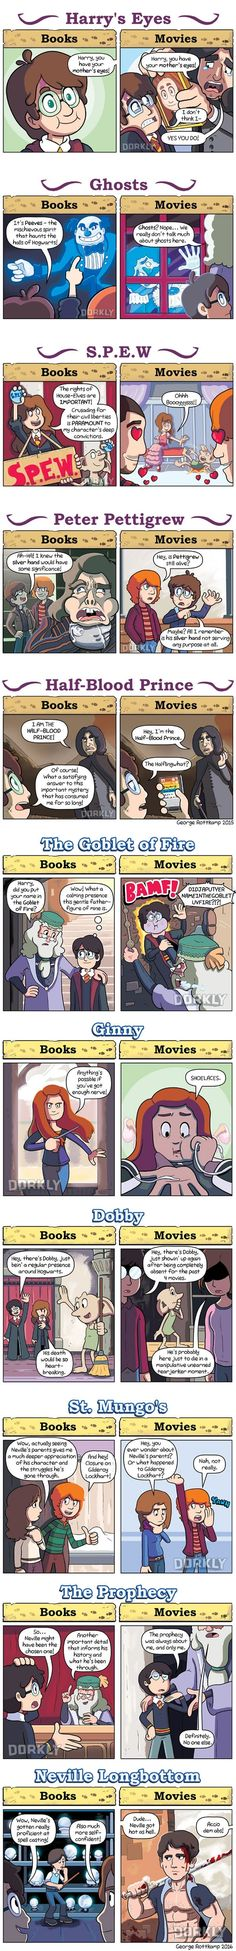 Ways Harry Potter movies are different from the books